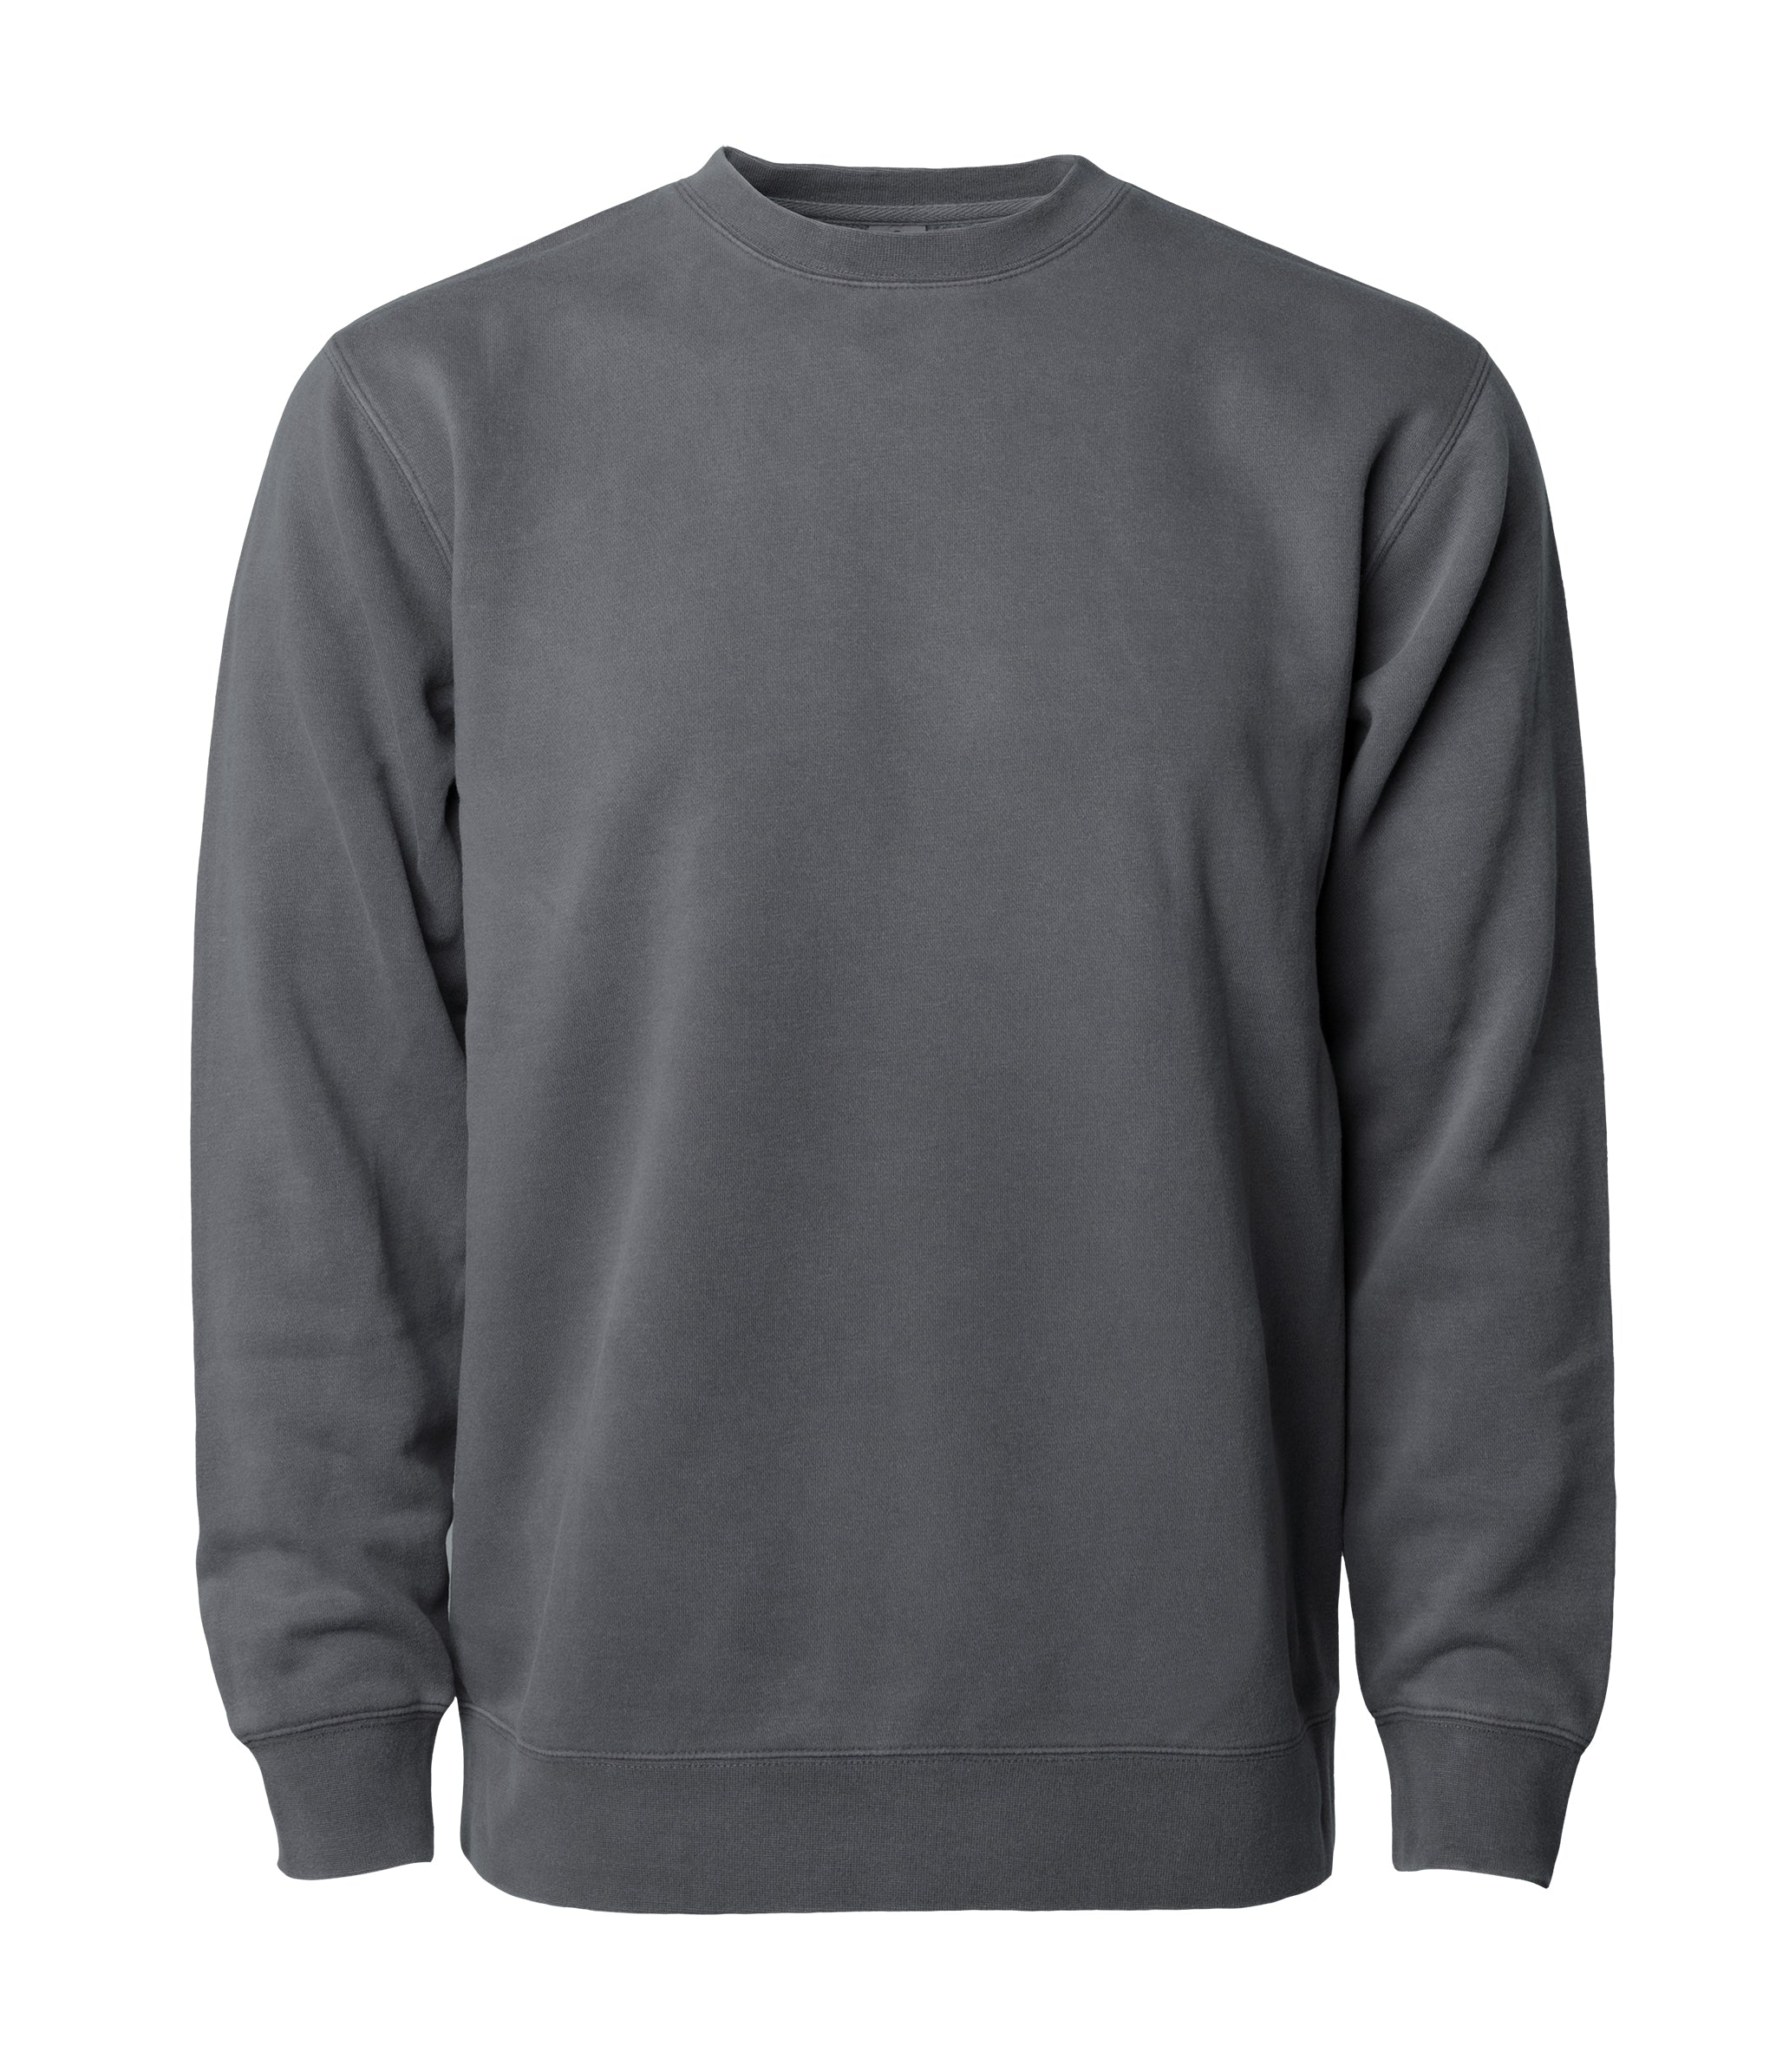 1a3f00a7af28 Unisex Midweight Pigment Dyed Crew Neck